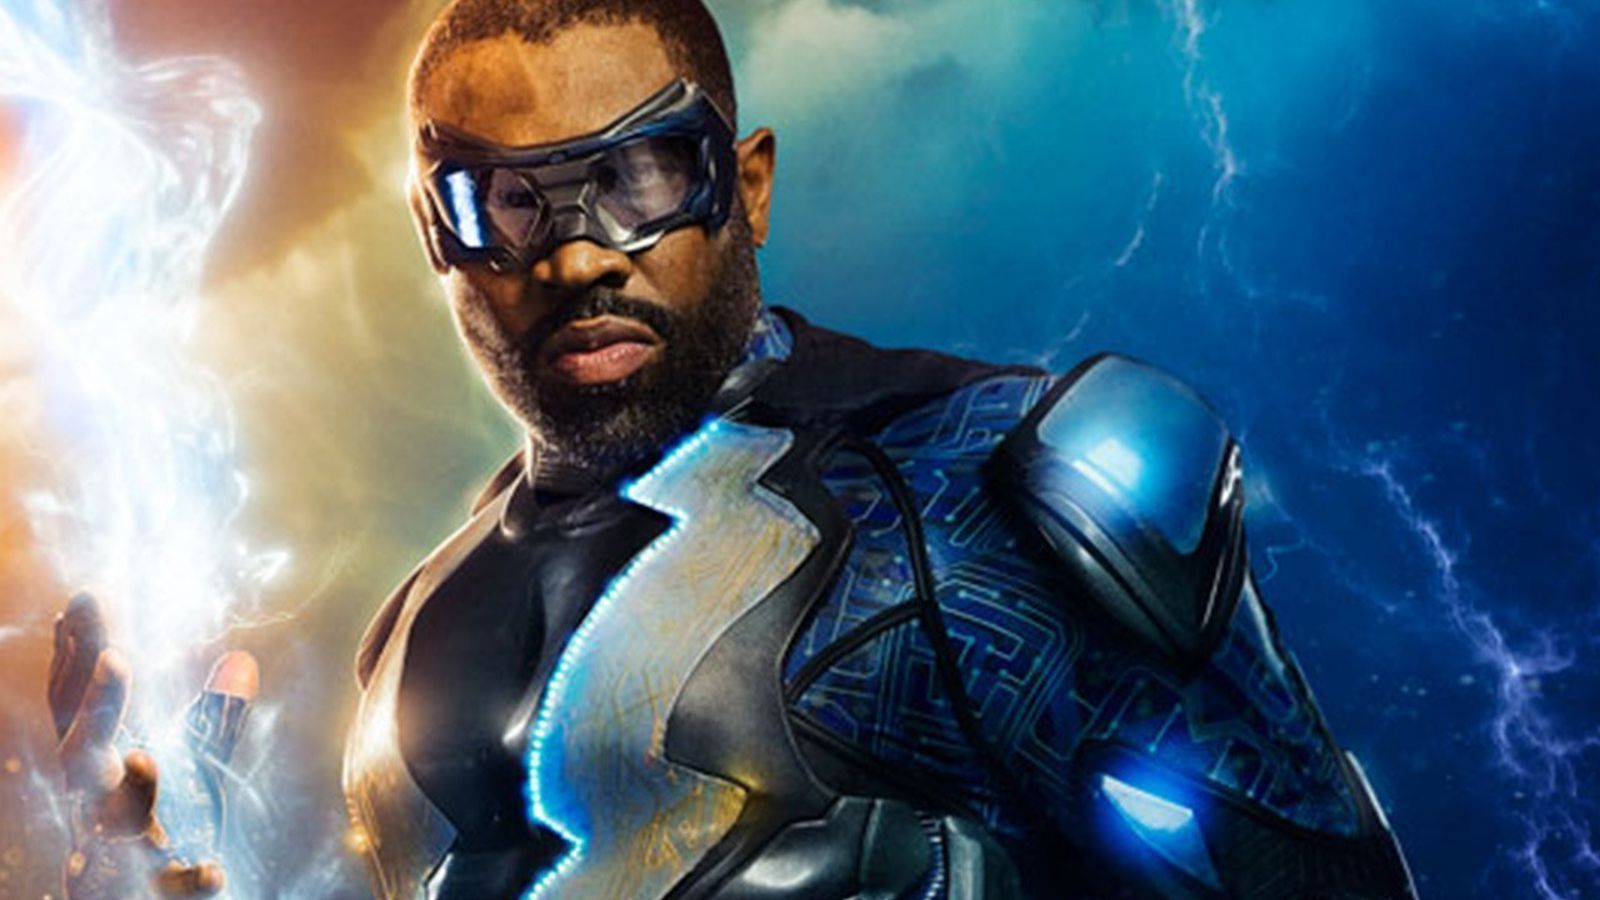 Watch the first action-packed trailer for Black Lightning, The CW's new superhero show